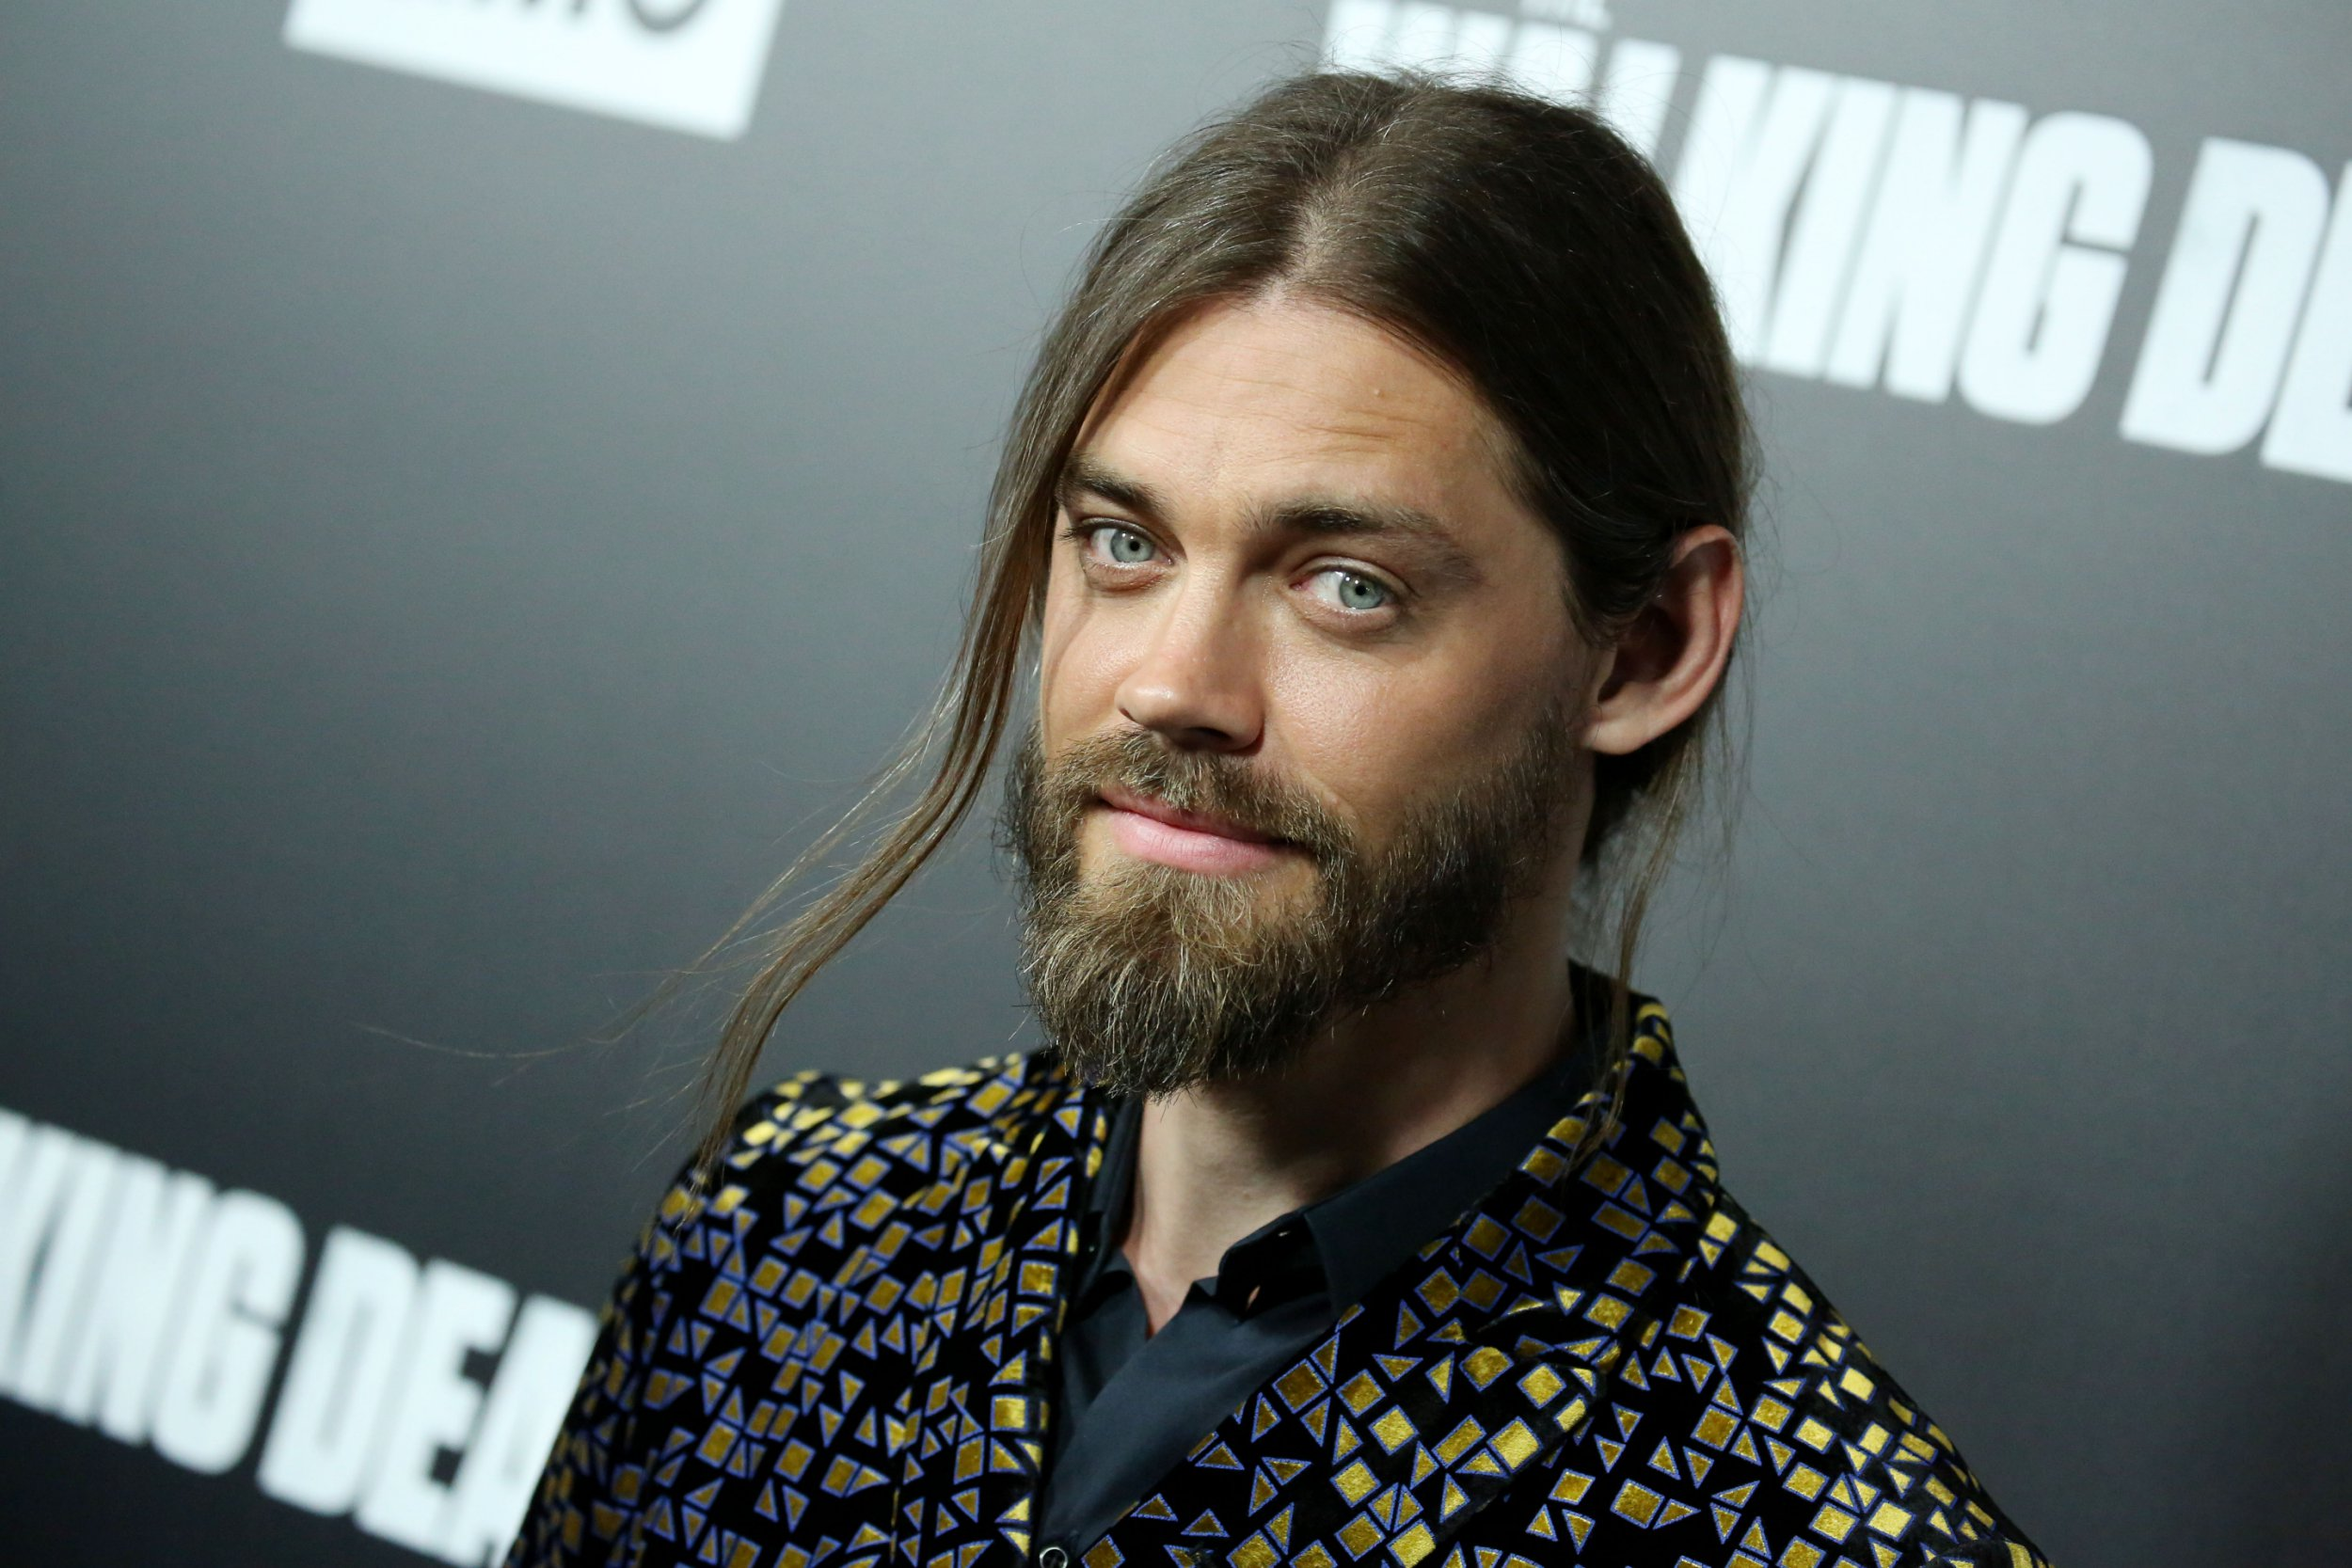 The Walking Dead's Tom Payne replaces Iron Fist star in Prodigal Son after sudden axe